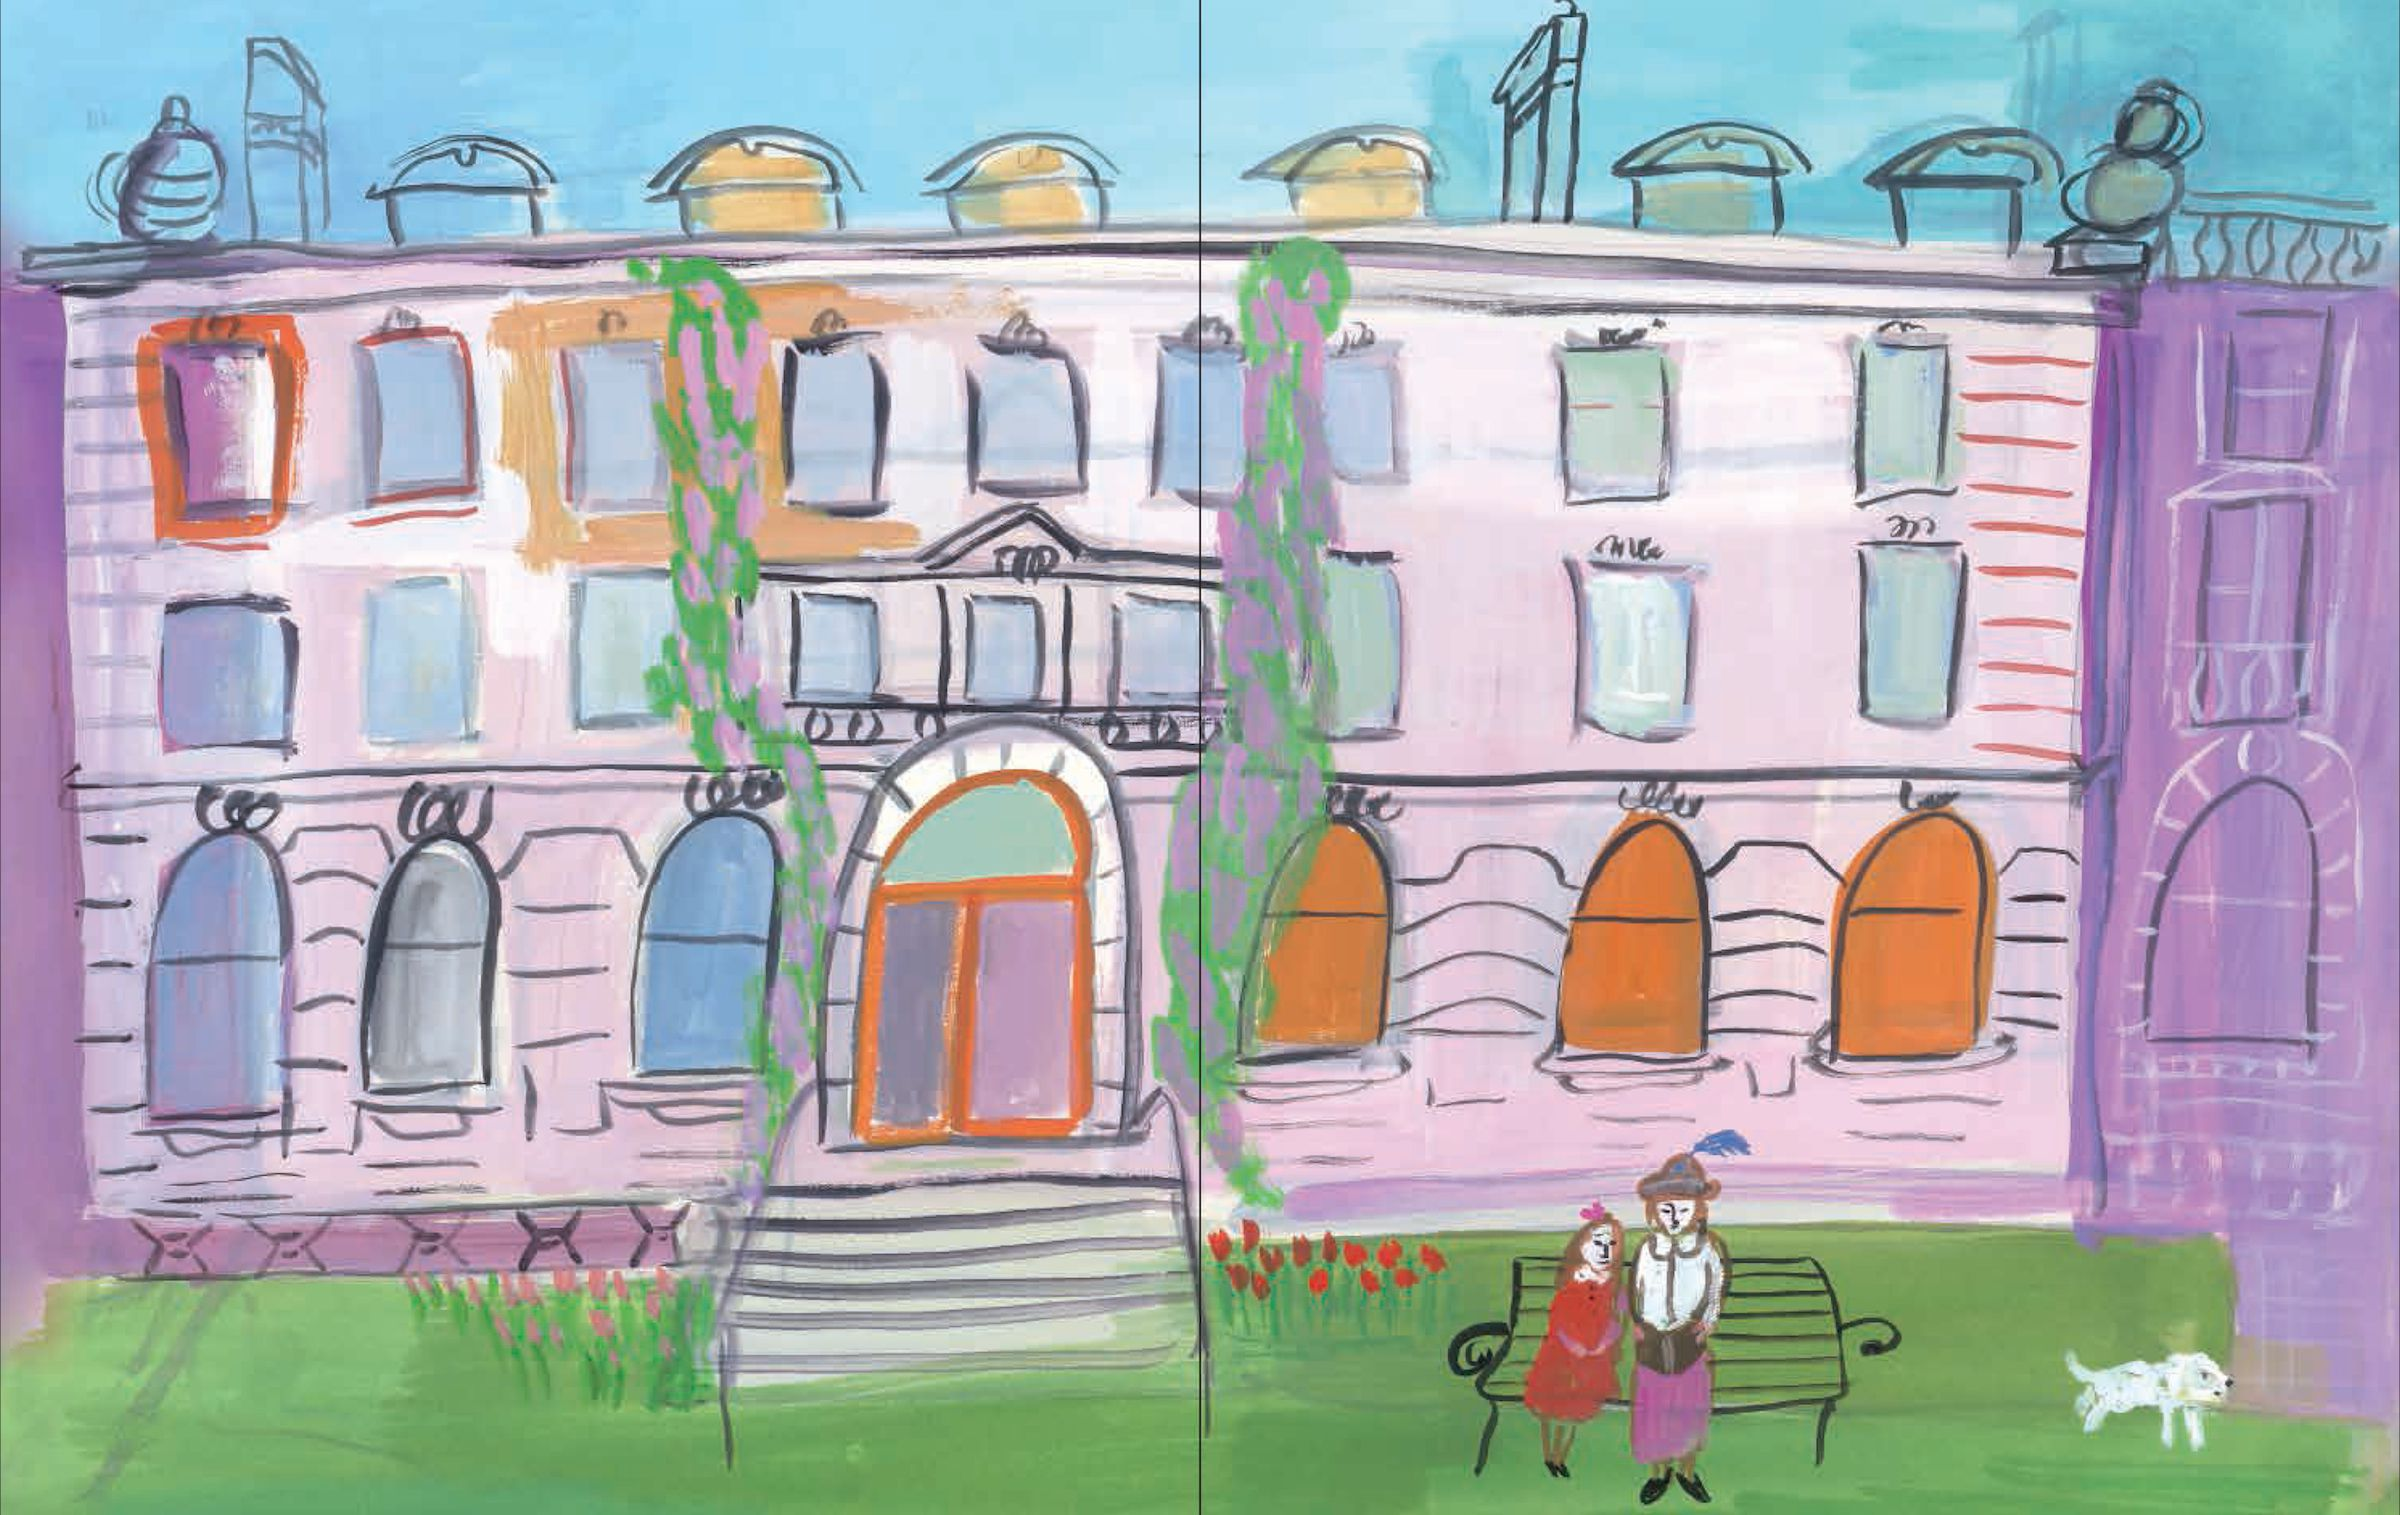 Cooper Hewitt museum at the carnegie mansion illustration by Maira Kalman